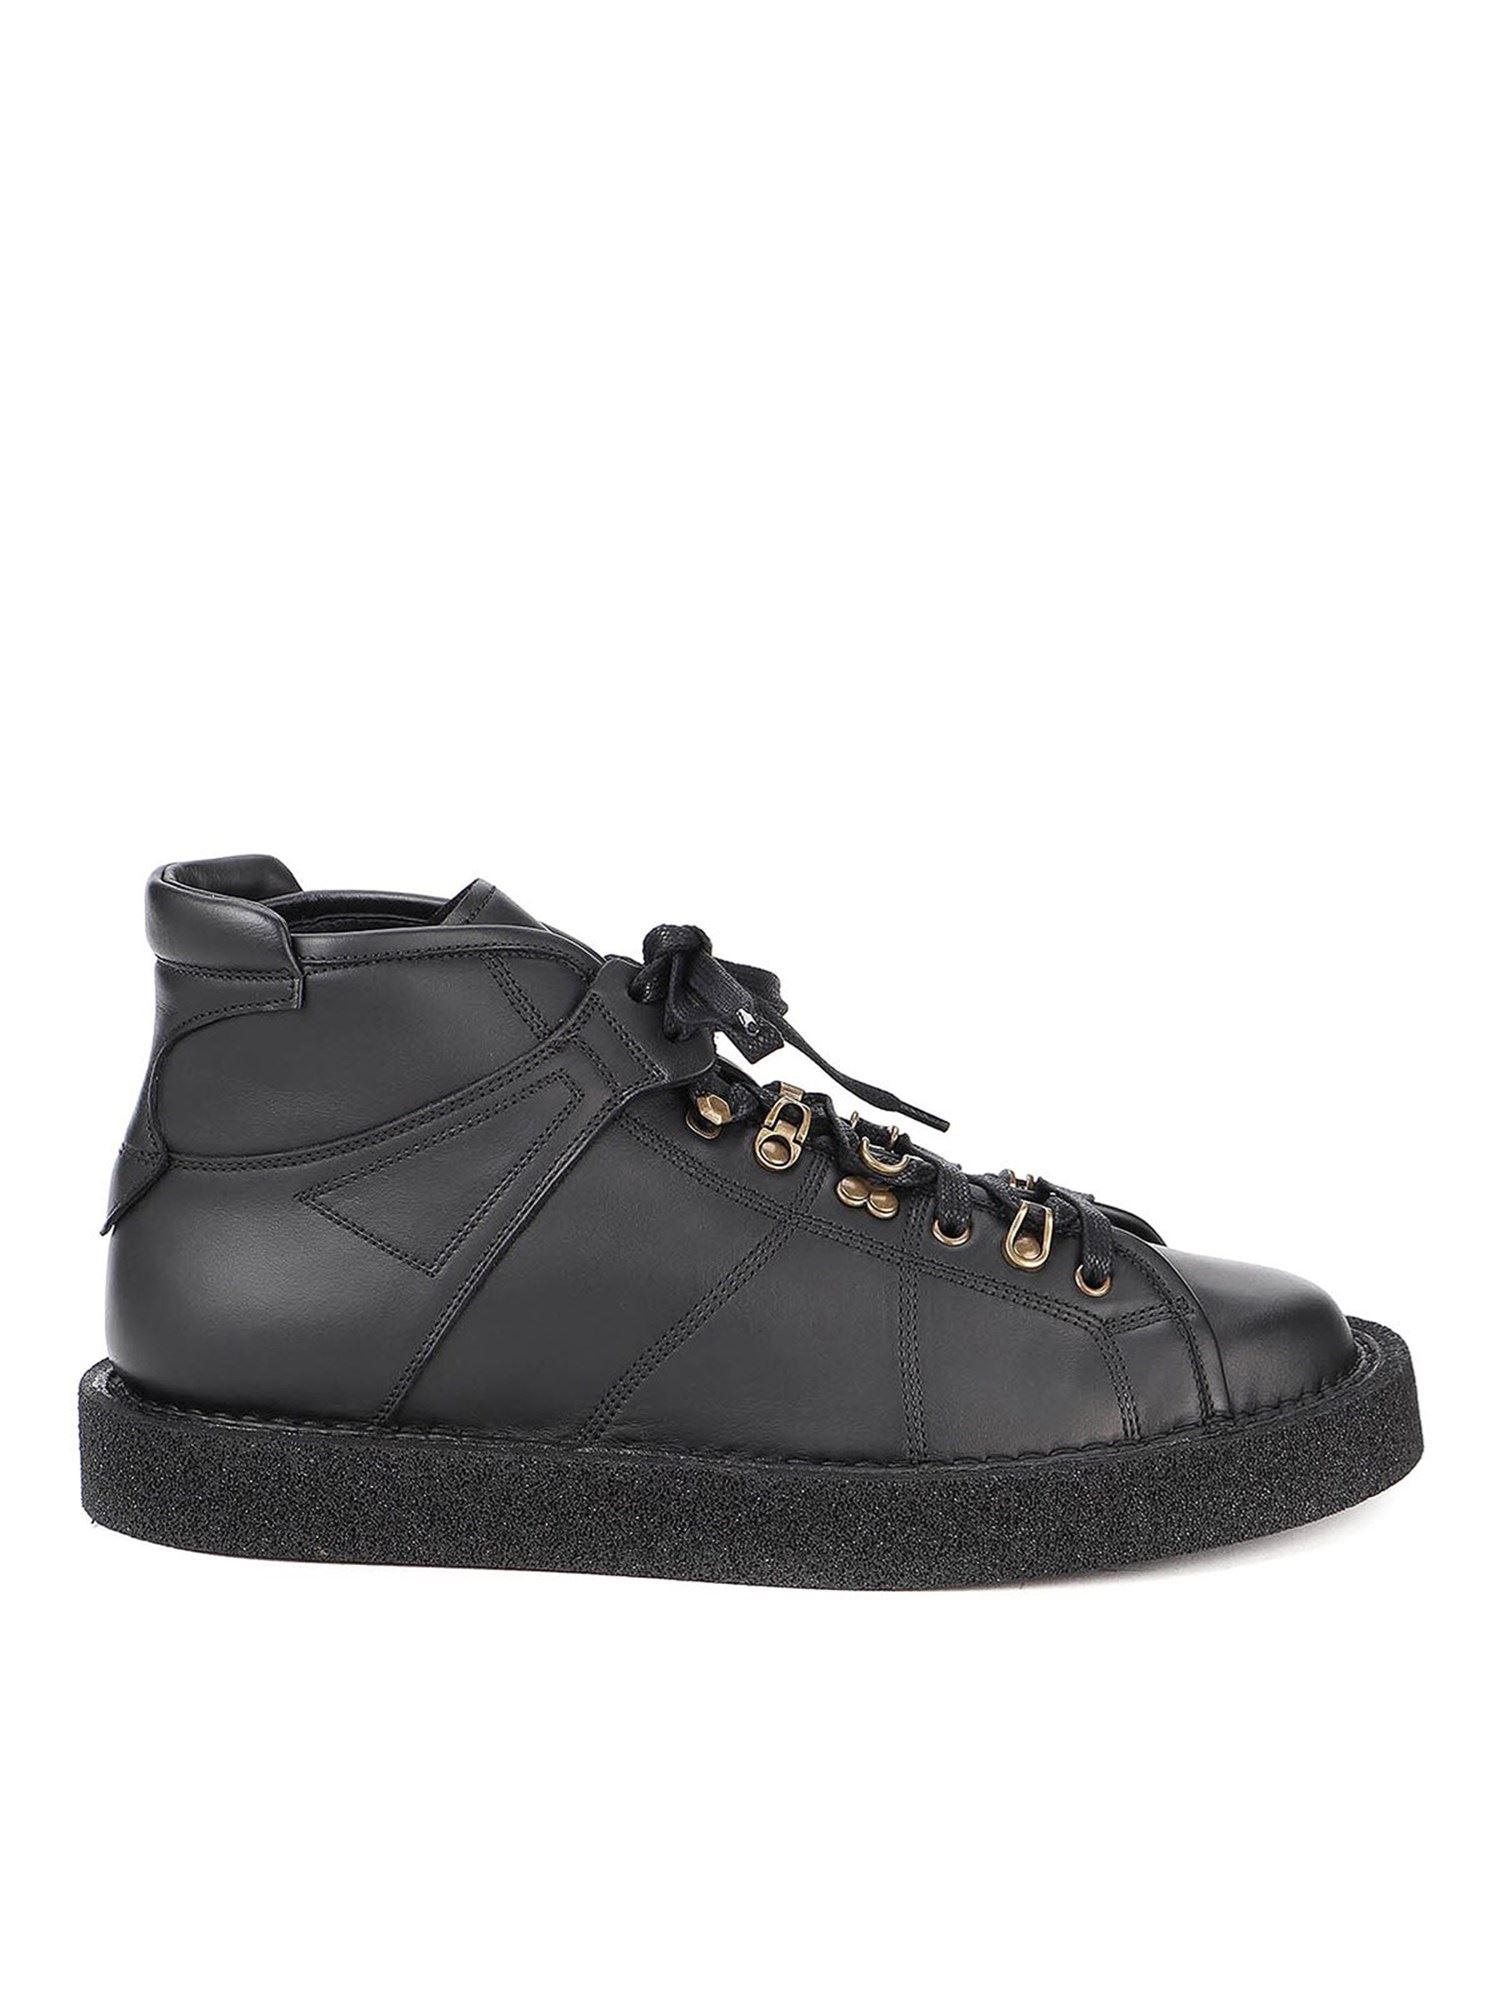 Dolce & Gabbana Leathers MODIGLIANI ANKLE BOOTS IN BLACK